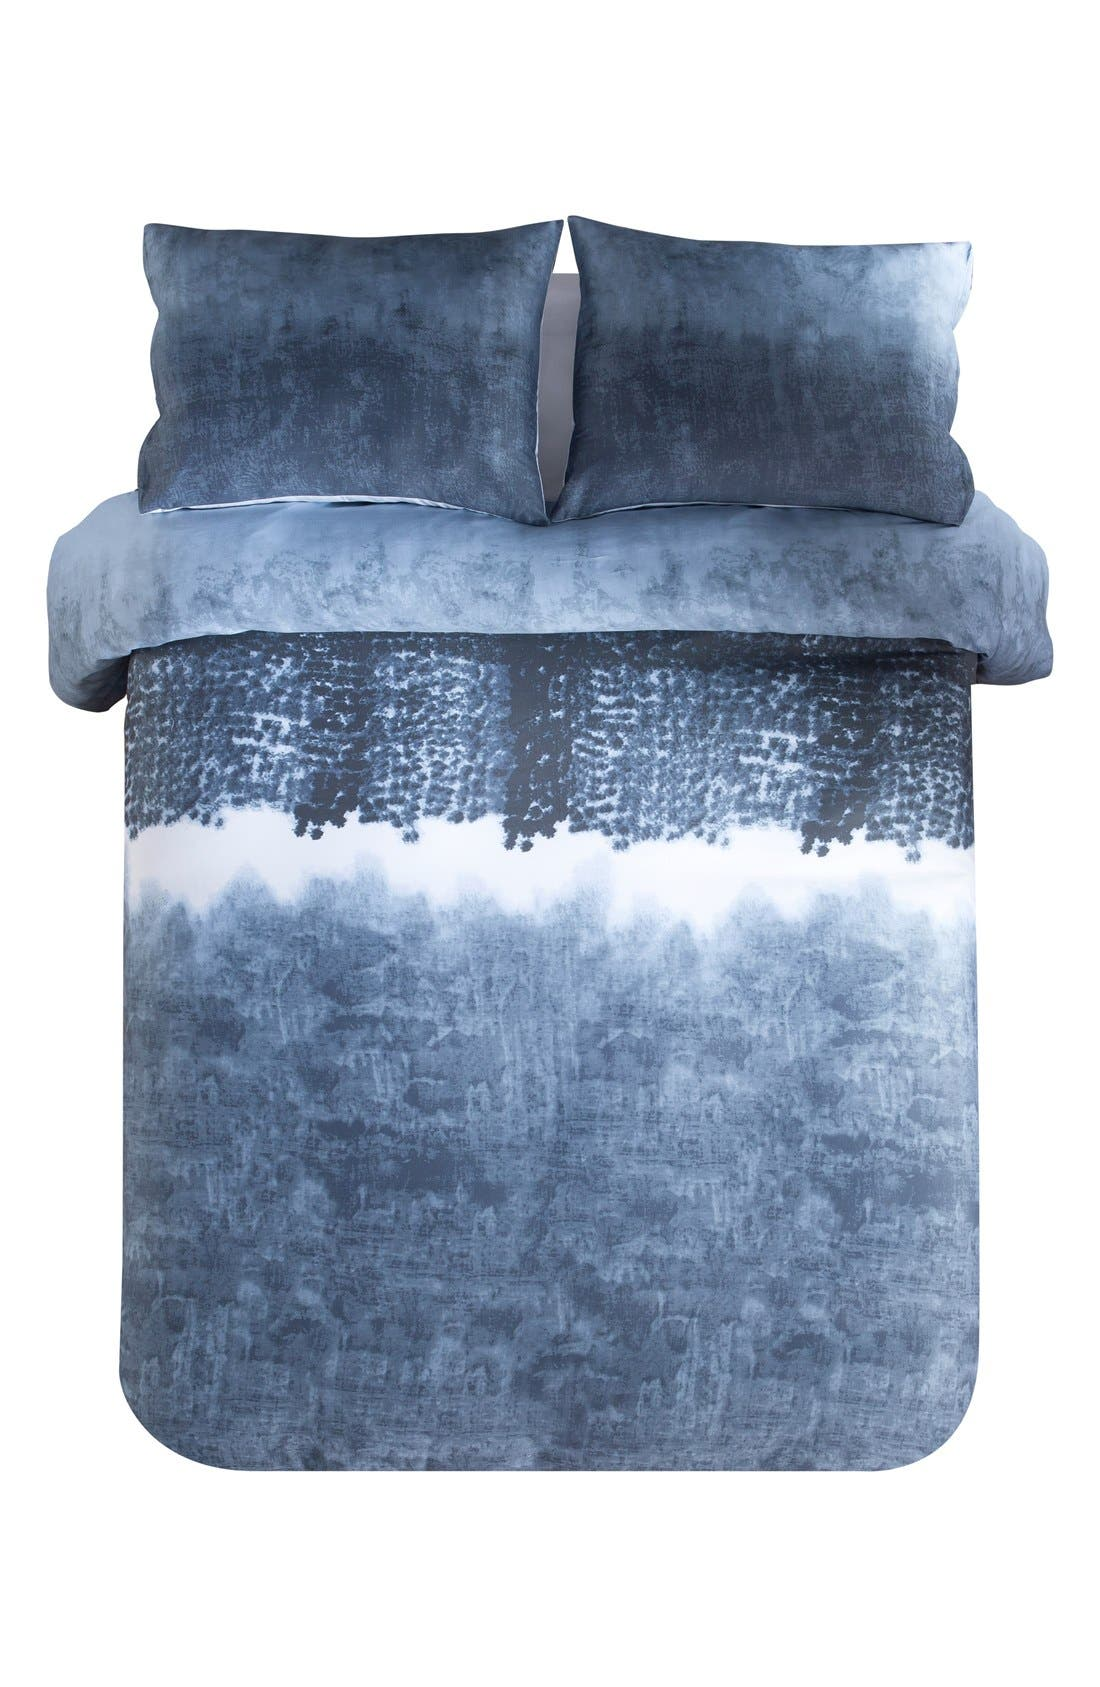 Alternate Image 1 Selected - kensie Janie 300 Thread Count Duvet Cover & Sham Set